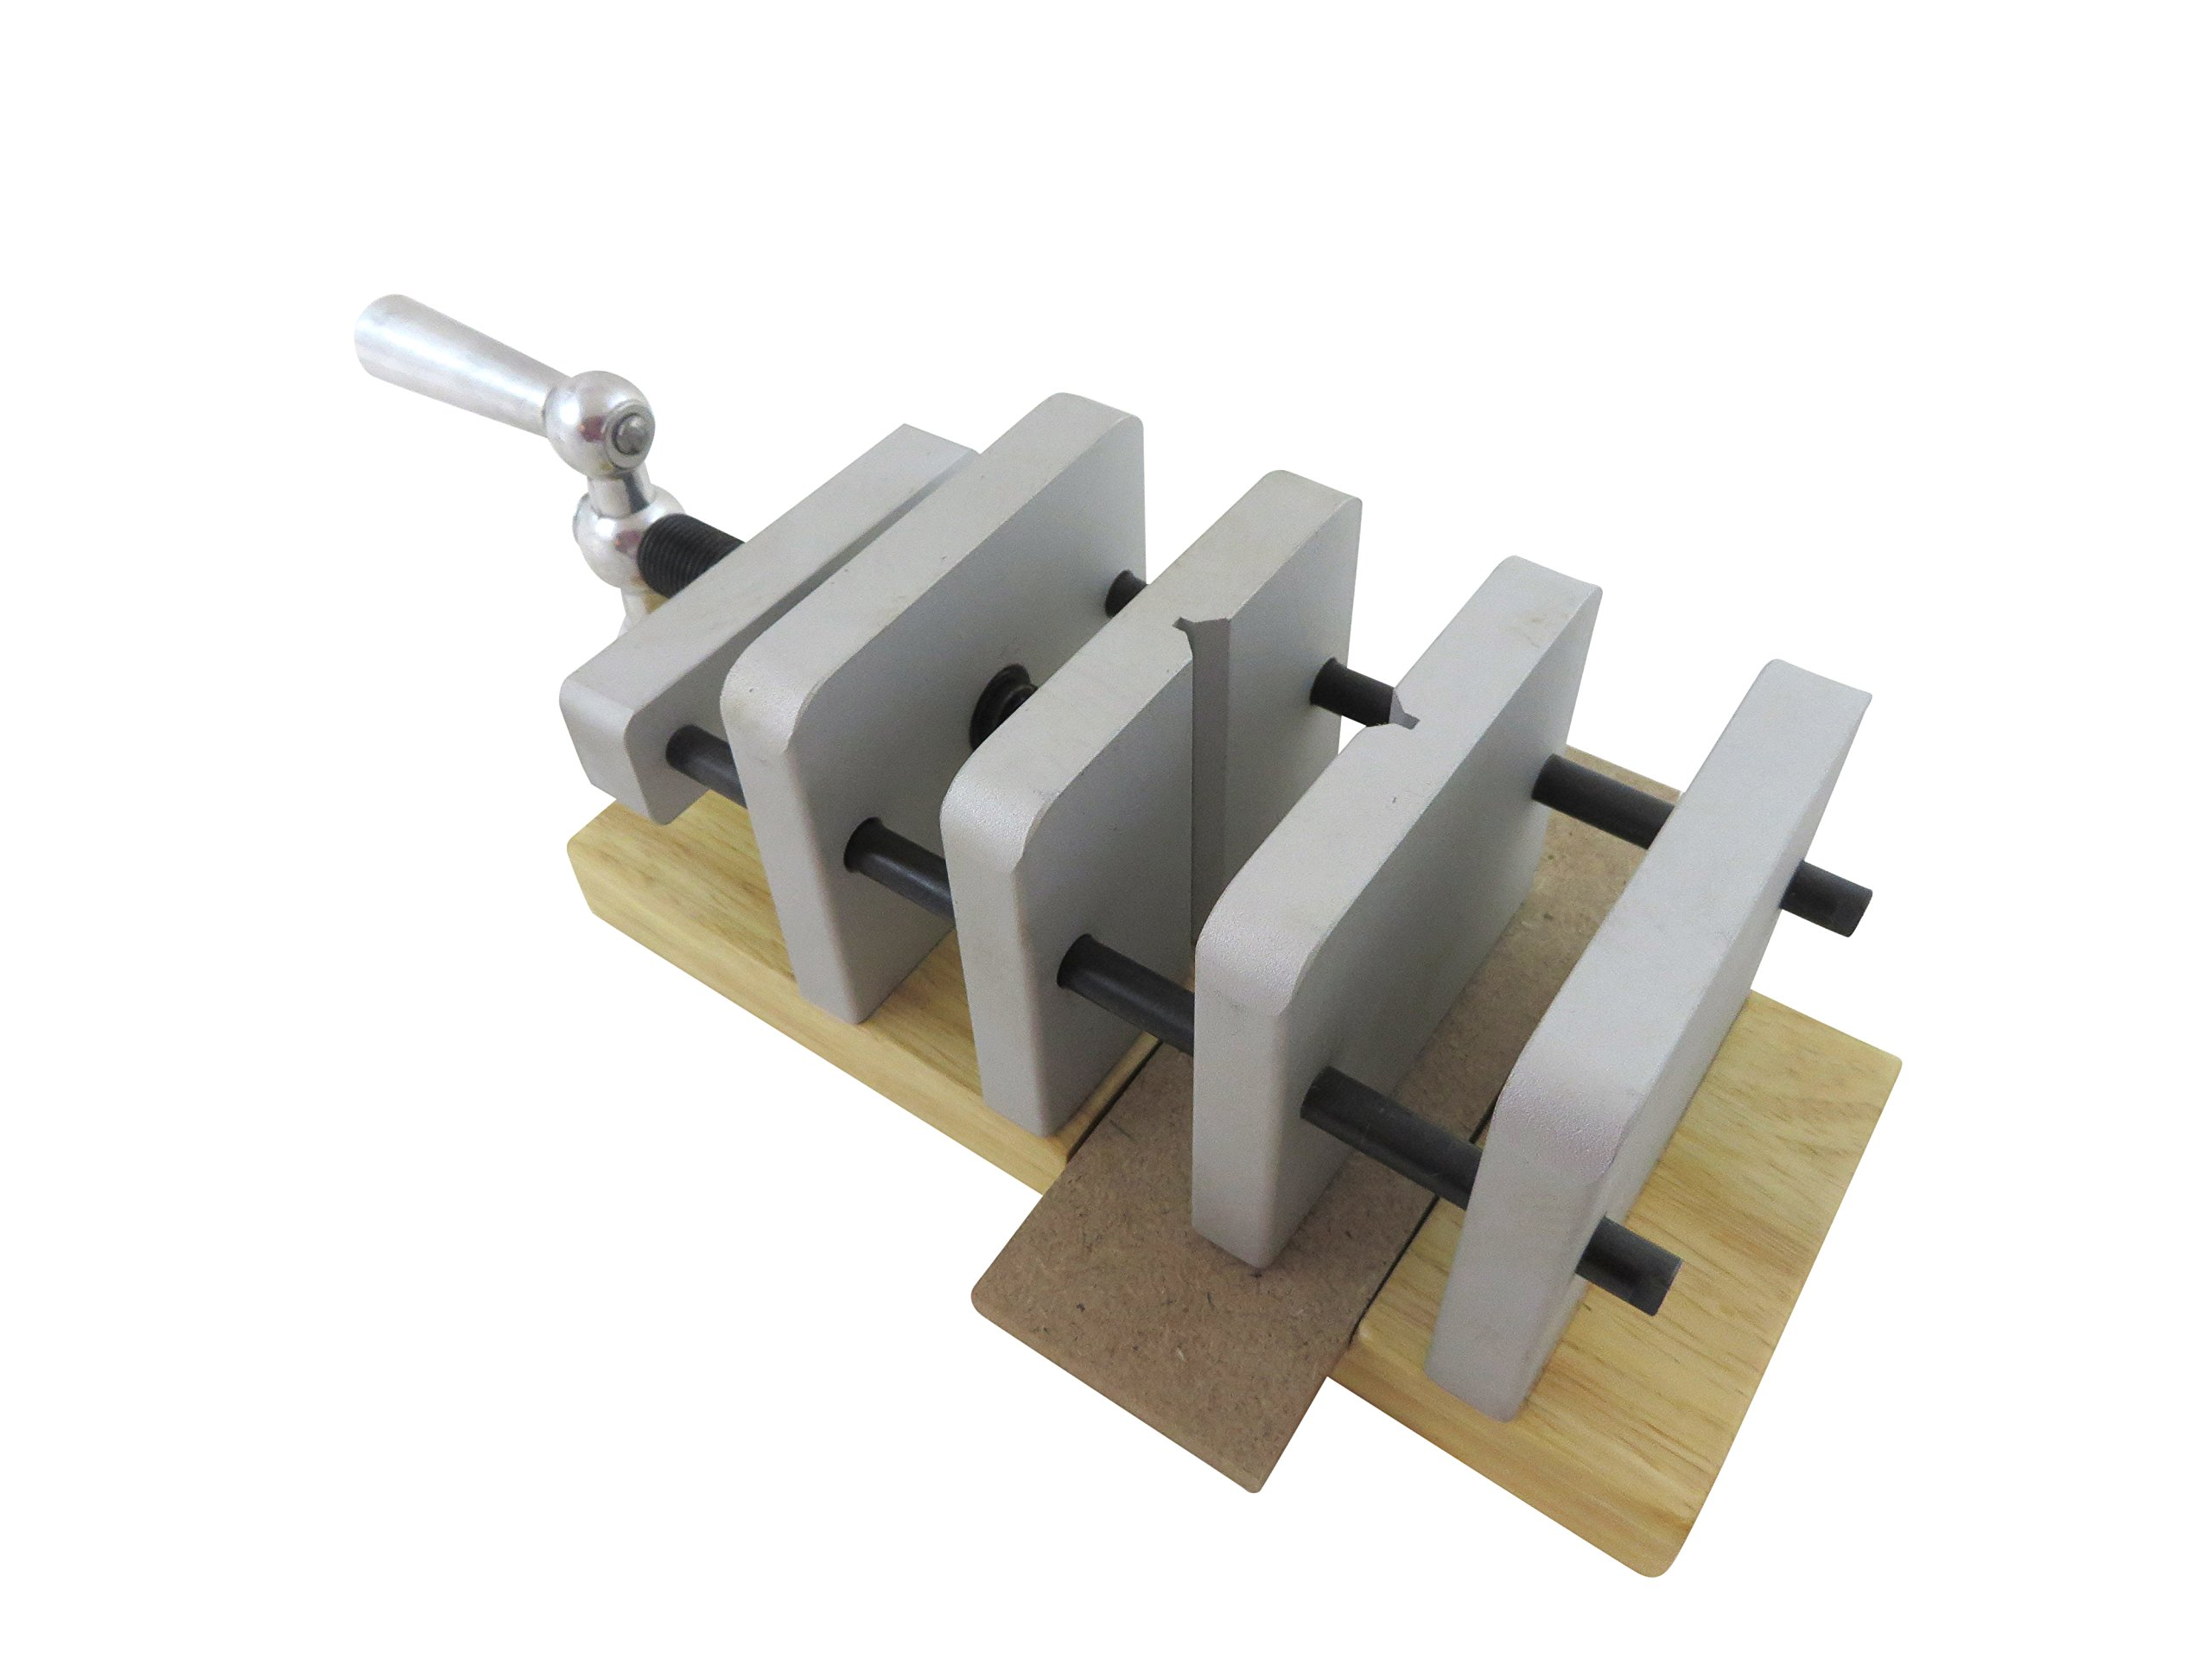 """Taytools 469003 Deluxe Pen Blank Centering Drill Press Vice, Jaws open to 2-3/8"""", Will Drill Center of Blanks Up to 1-7/8"""" Square"""